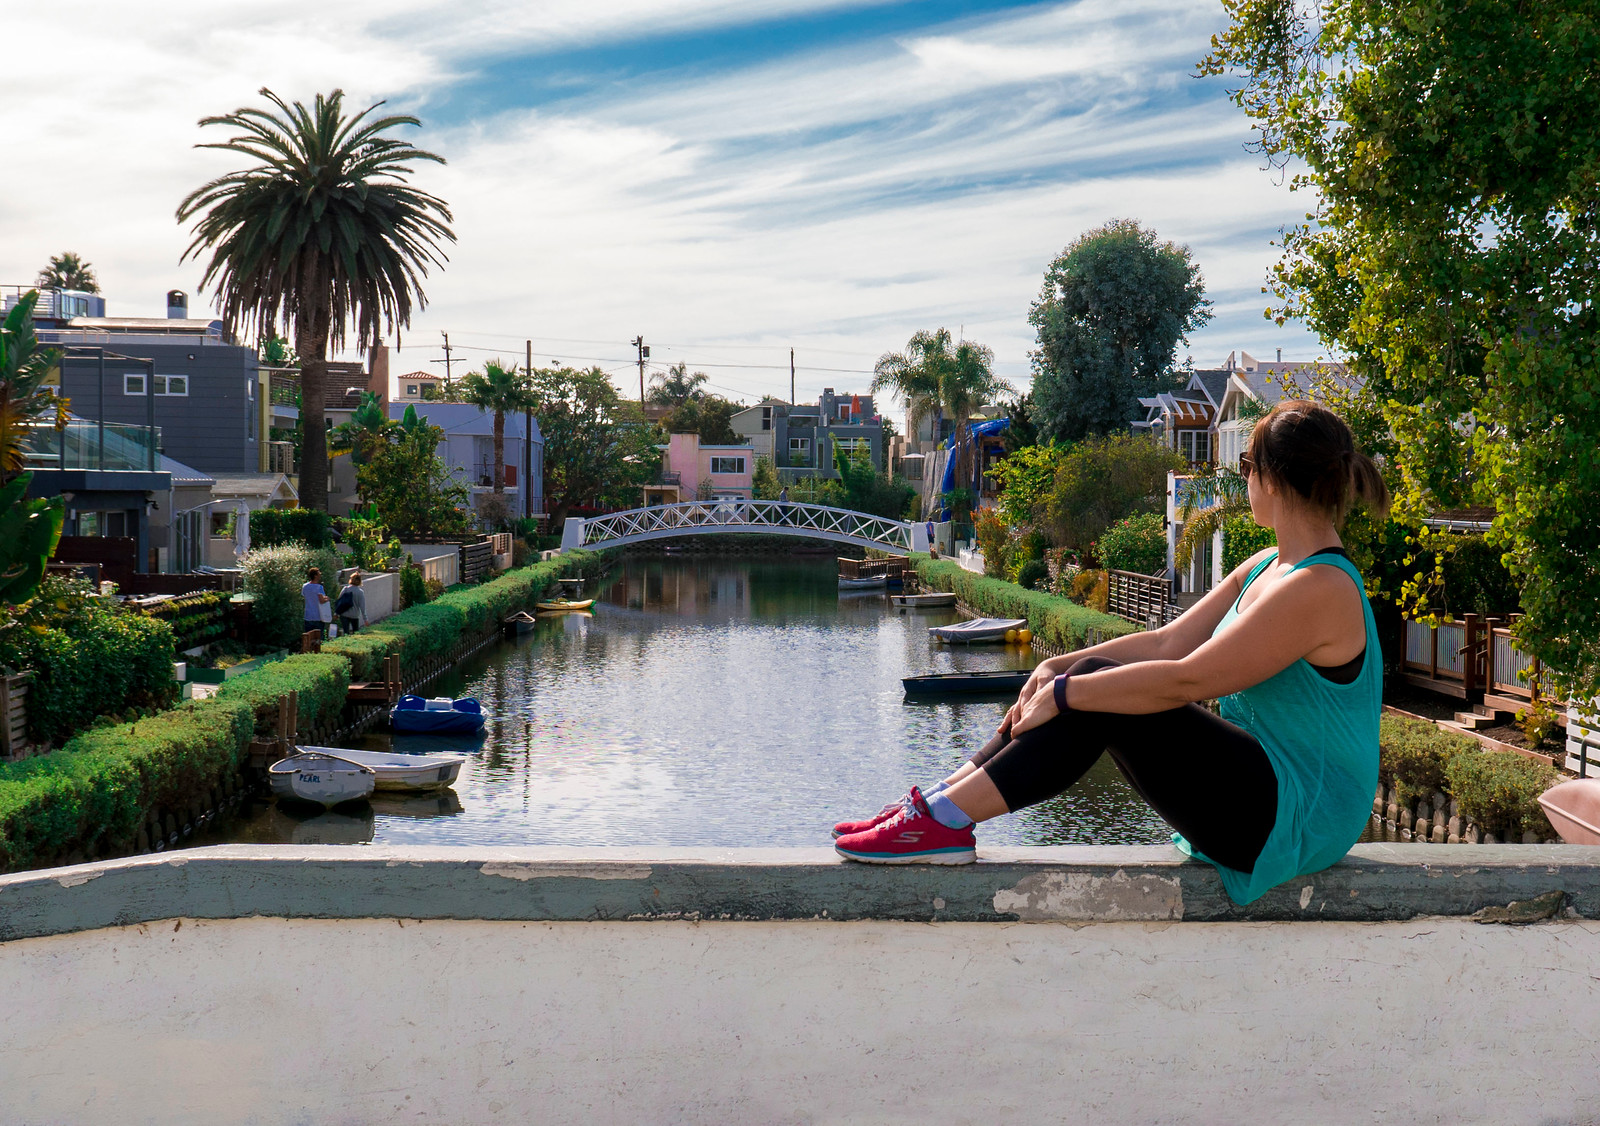 Venice Canals - Los Angeles in a day